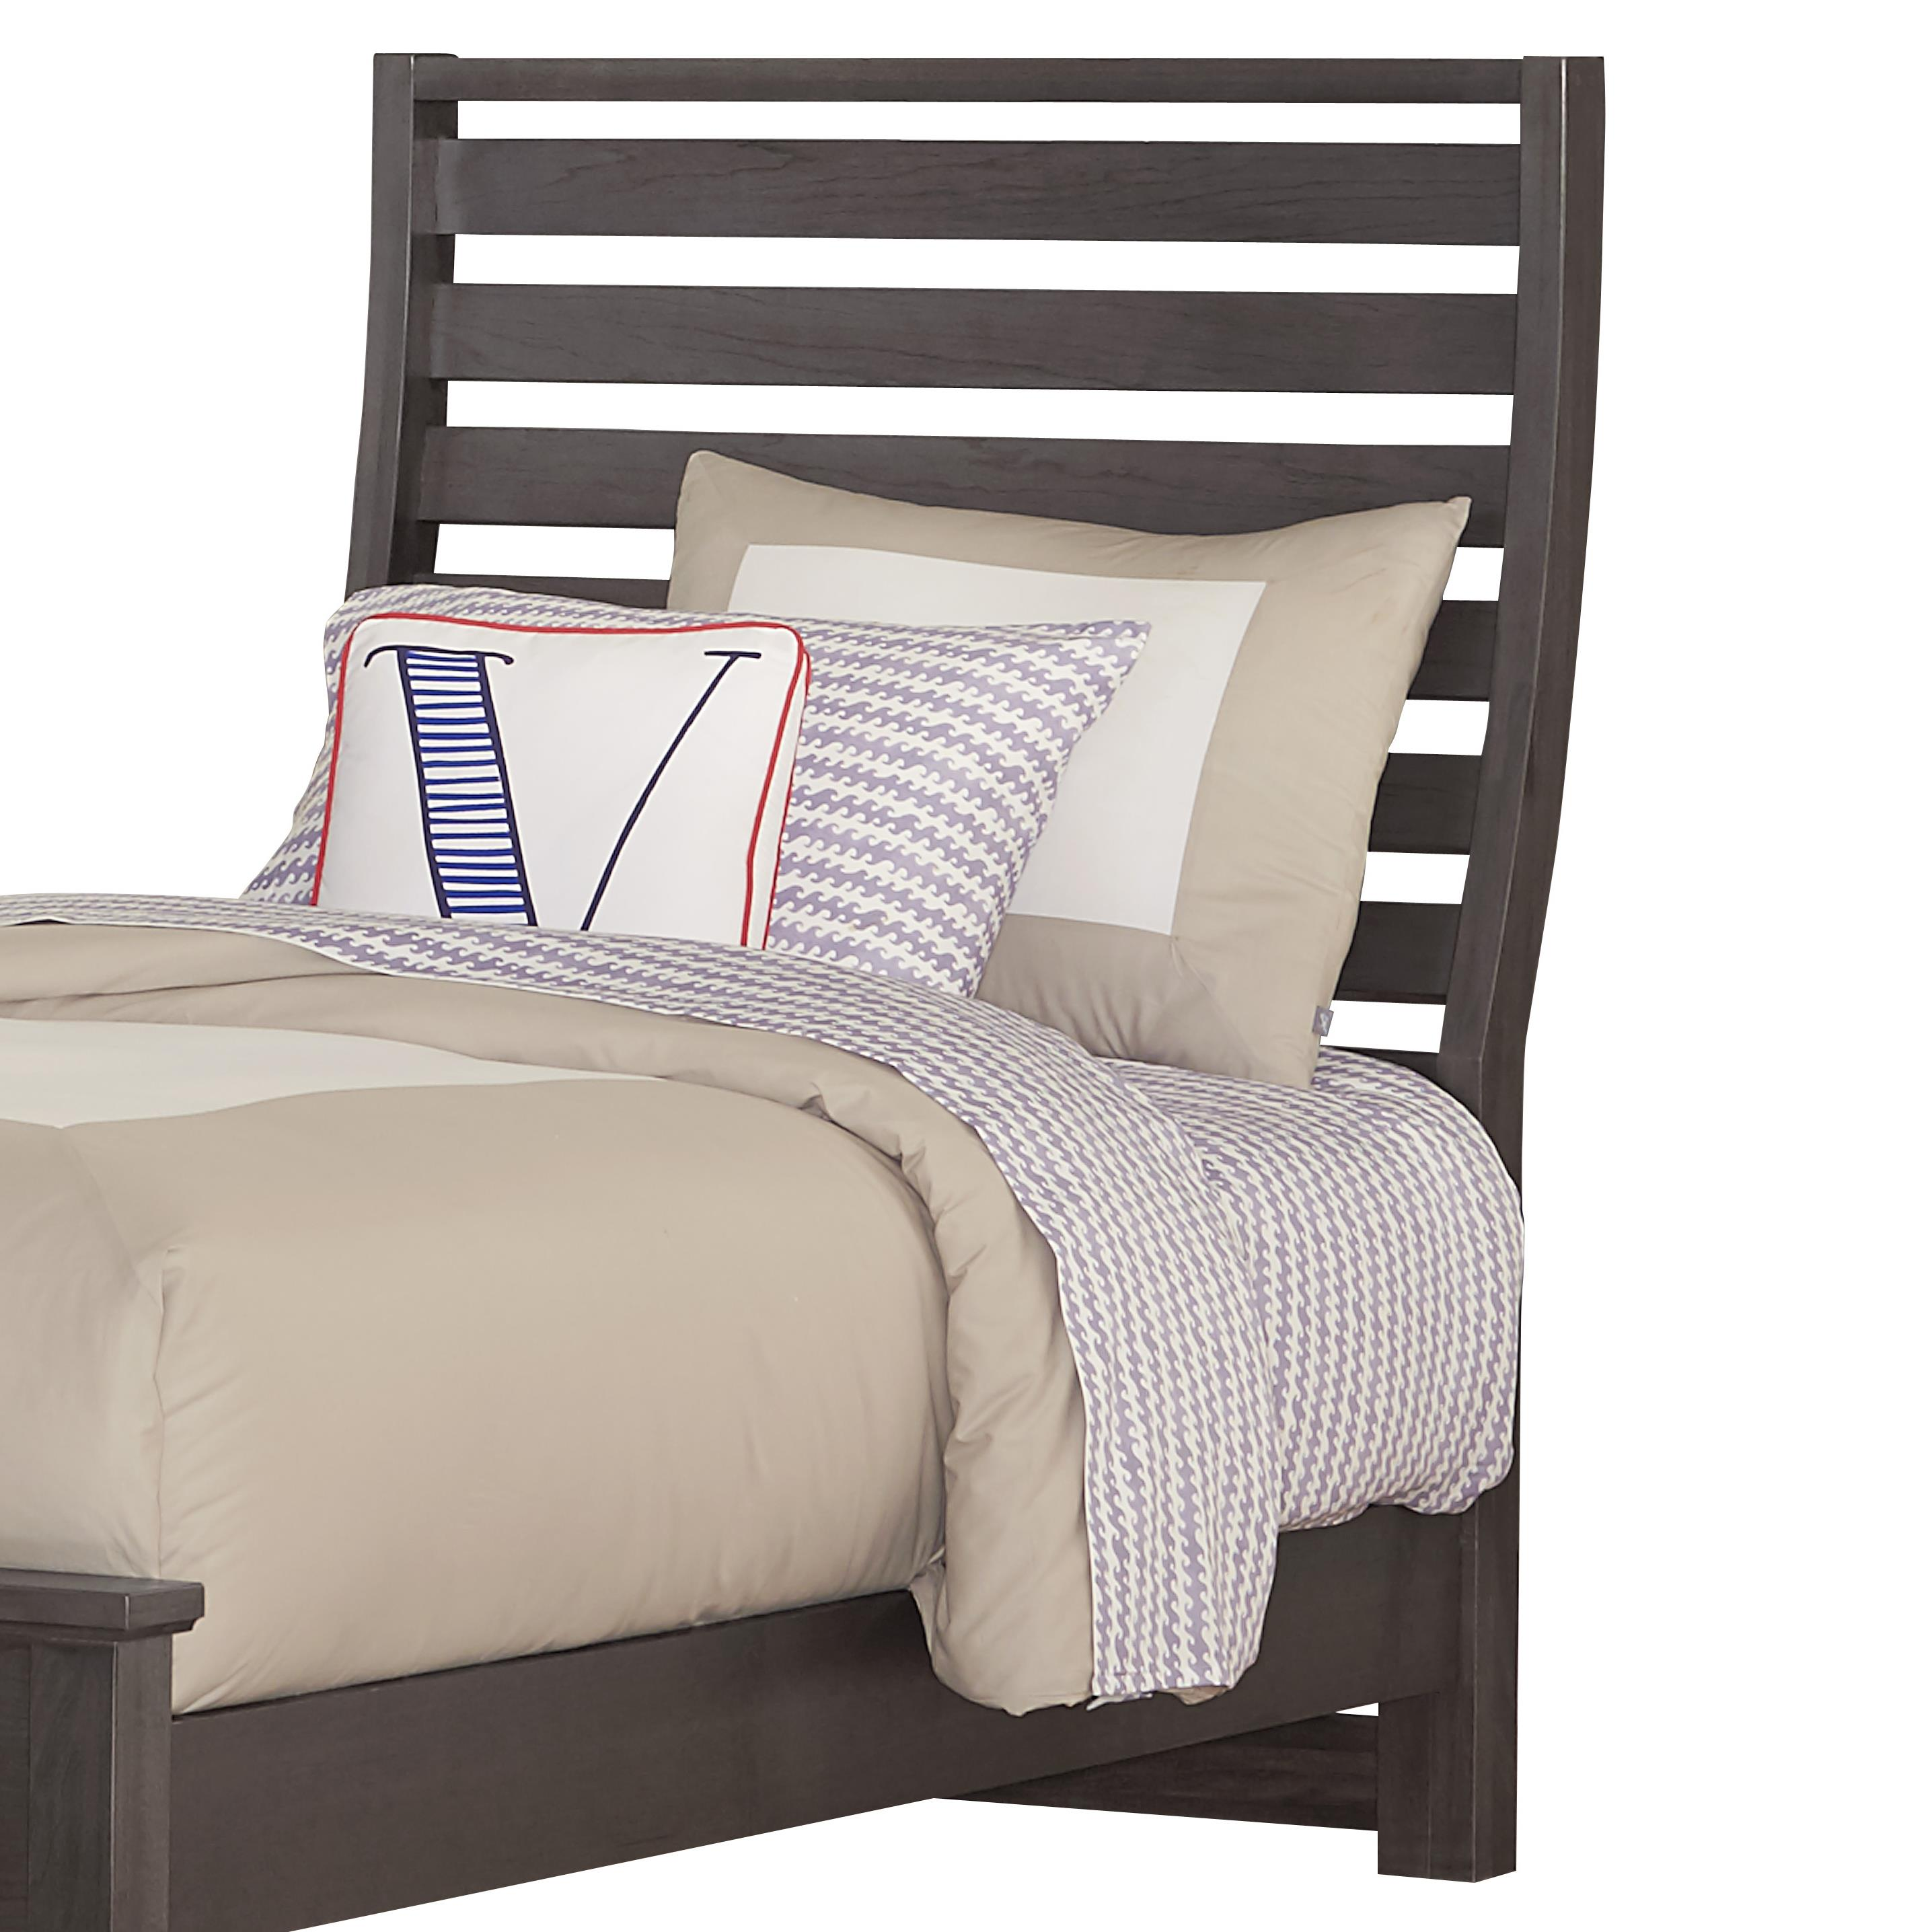 Vaughan Bassett Commentary Twin Benchback Headboard - Item Number: 394-338